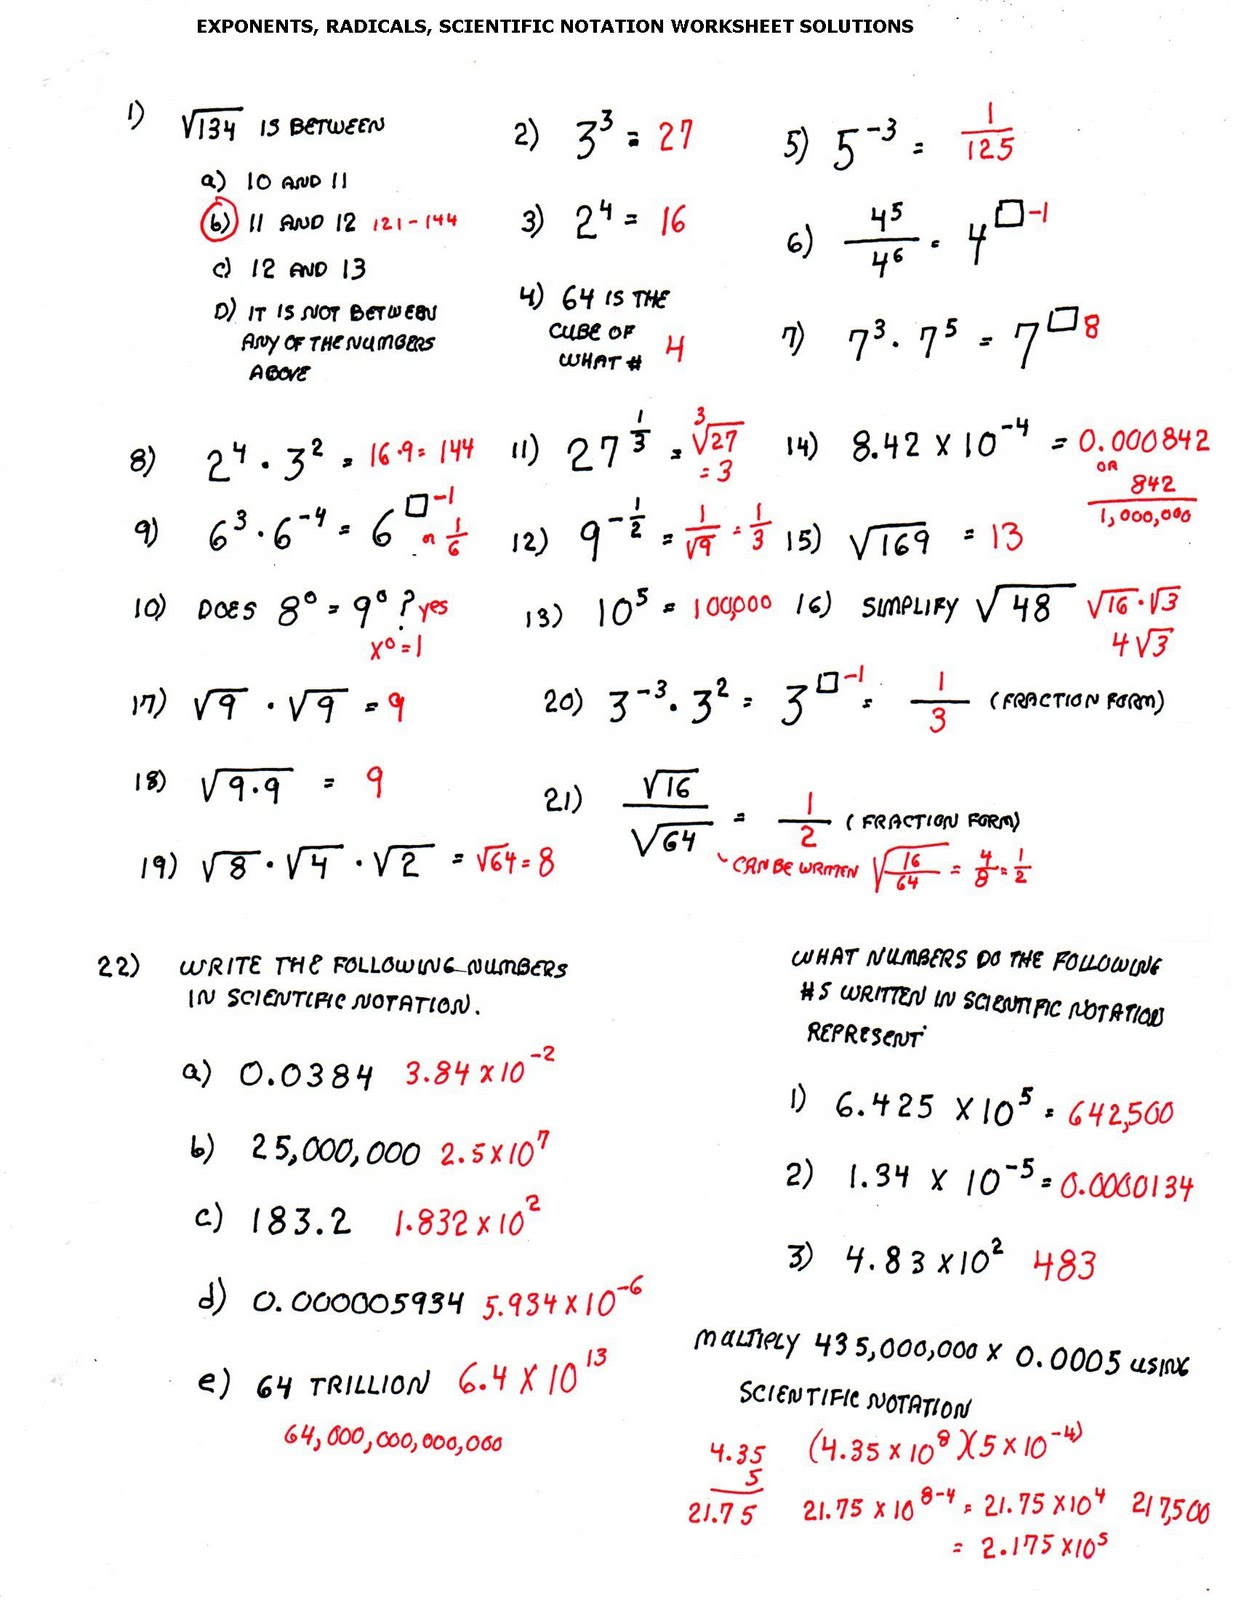 Cobb Adult Ed Math Solutions To Last 3 Worksheets